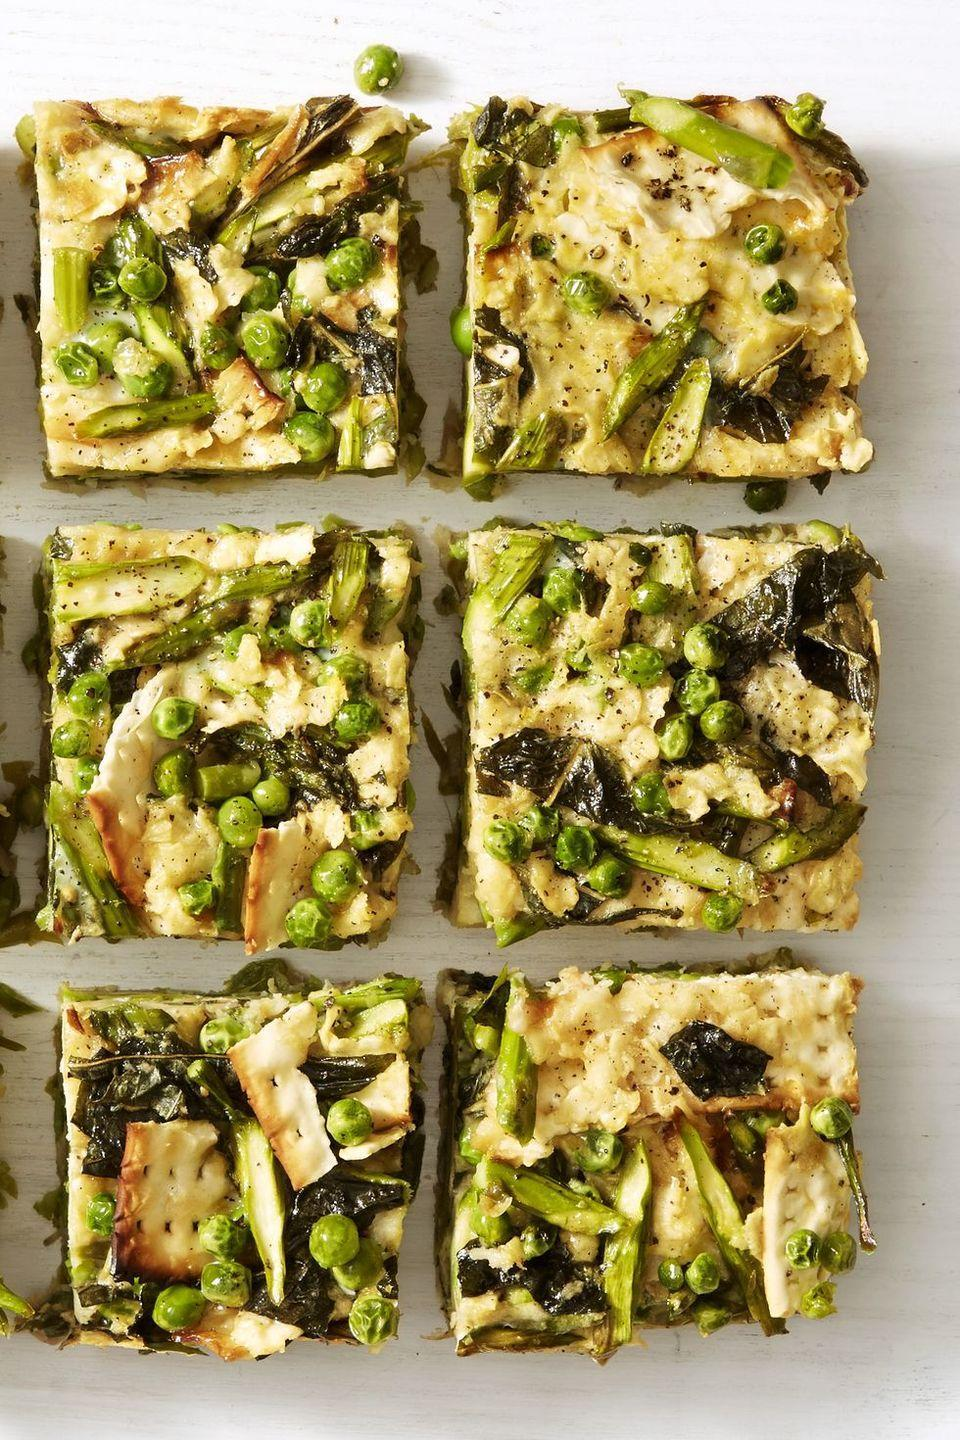 """<p>This bake-ahead frittata is certainly leftover friendly! You'll be loving it all week long.</p><p><em><a href=""""https://www.goodhousekeeping.com/food-recipes/a43211/spring-greens-matzo-frittata-recipe/"""" rel=""""nofollow noopener"""" target=""""_blank"""" data-ylk=""""slk:Get the recipe for Spring Greens Matzo Frittata »"""" class=""""link rapid-noclick-resp"""">Get the recipe for Spring Greens Matzo Frittata »</a></em></p><p><strong>RELATED: </strong><a href=""""https://www.goodhousekeeping.com/food-recipes/easy/g871/quick-breakfasts/"""" rel=""""nofollow noopener"""" target=""""_blank"""" data-ylk=""""slk:30 Quick and Easy Breakfast Ideas for Your Busiest Mornings"""" class=""""link rapid-noclick-resp"""">30 Quick and Easy Breakfast Ideas for Your Busiest Mornings</a></p>"""